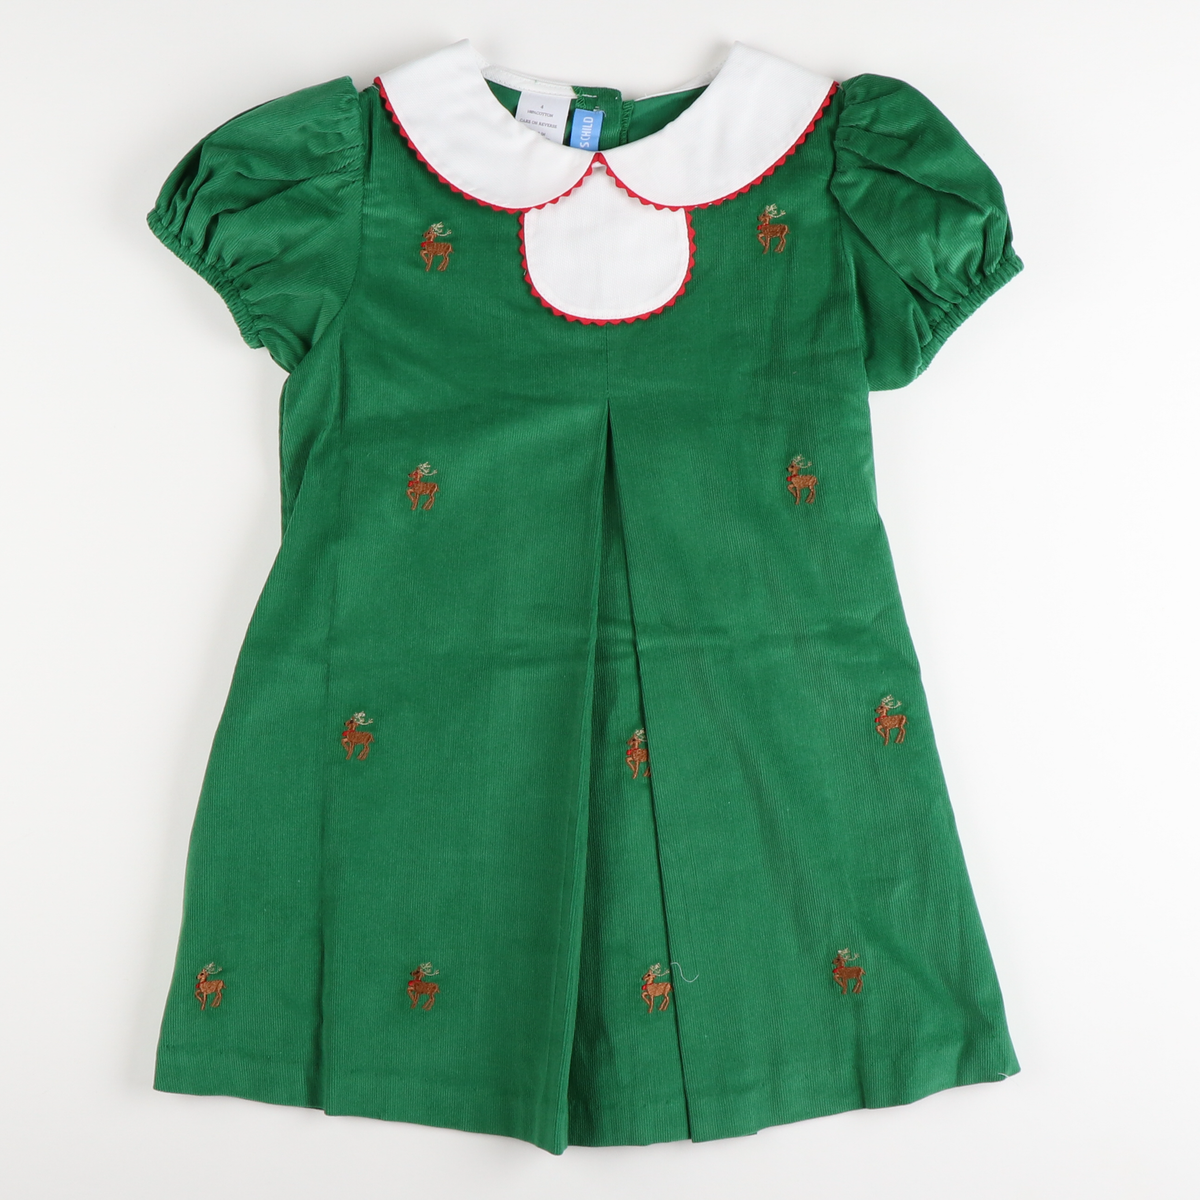 Embroidered Reindeer Pleated Dress - Green Corduroy